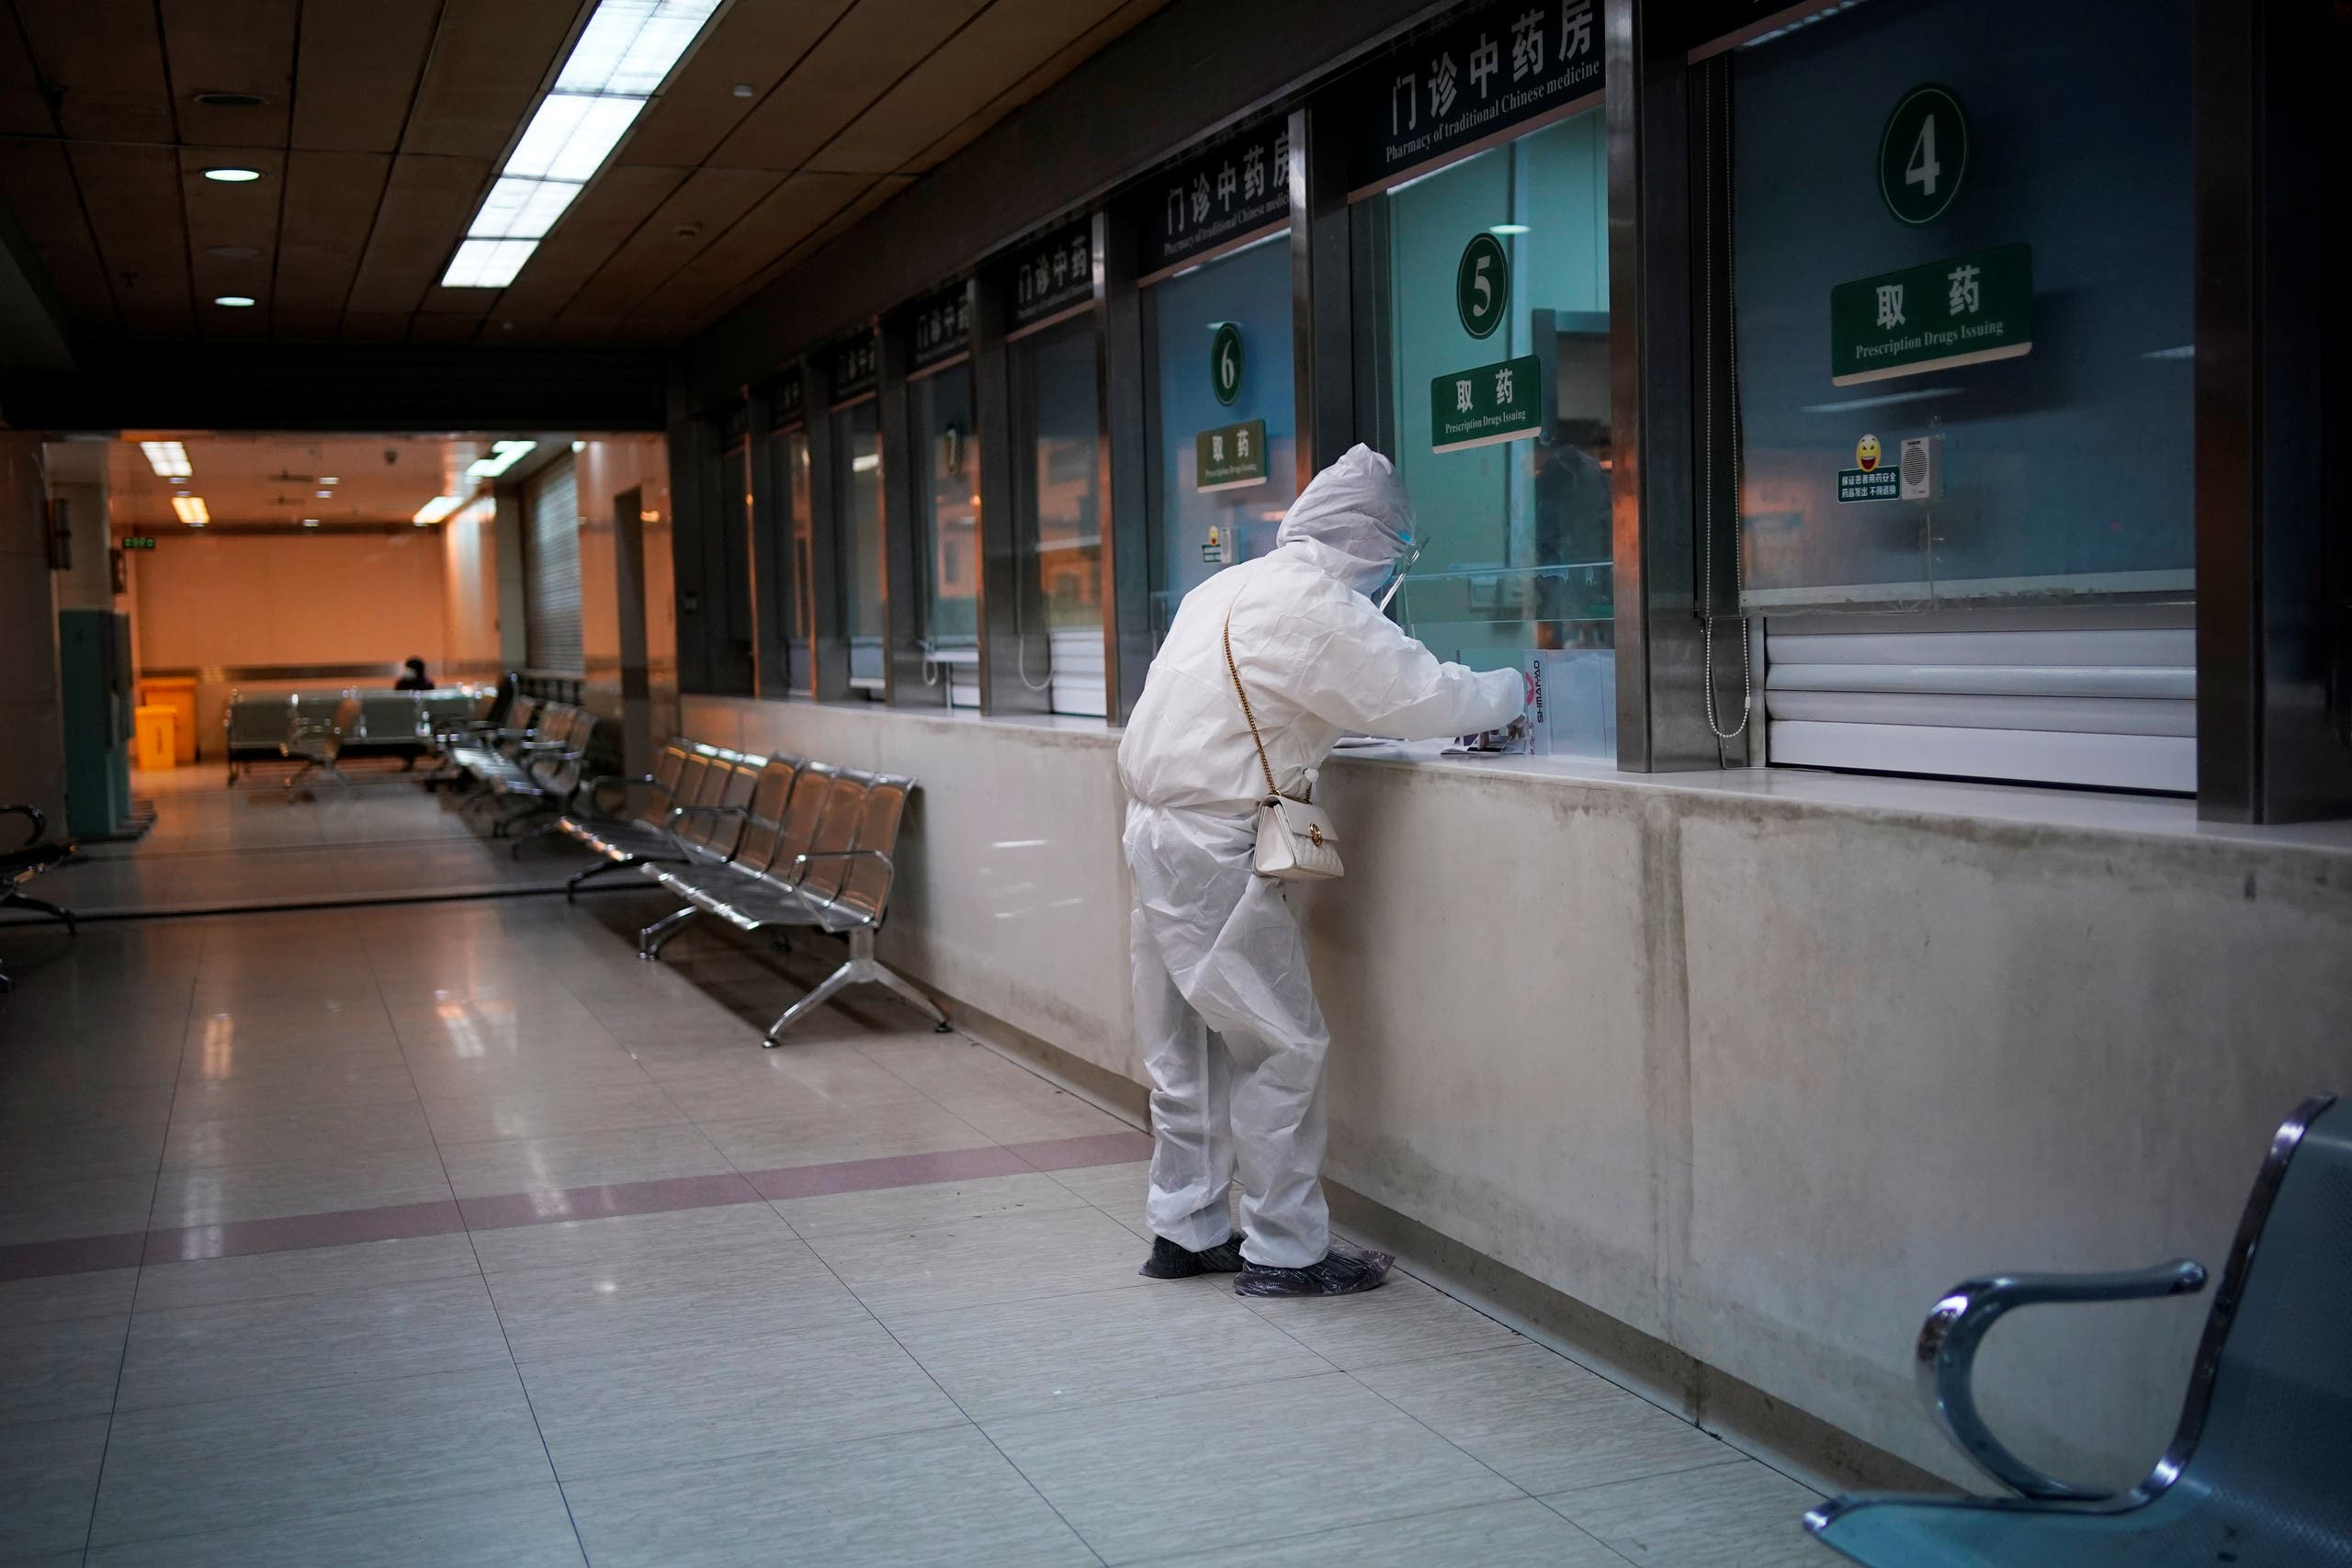 A woman wearing protective suit is seen at a hospital after the lockdown was lifted in Wuhan, capital of Hubei province and China's epicentre of the novel coronavirus. (Reuters)